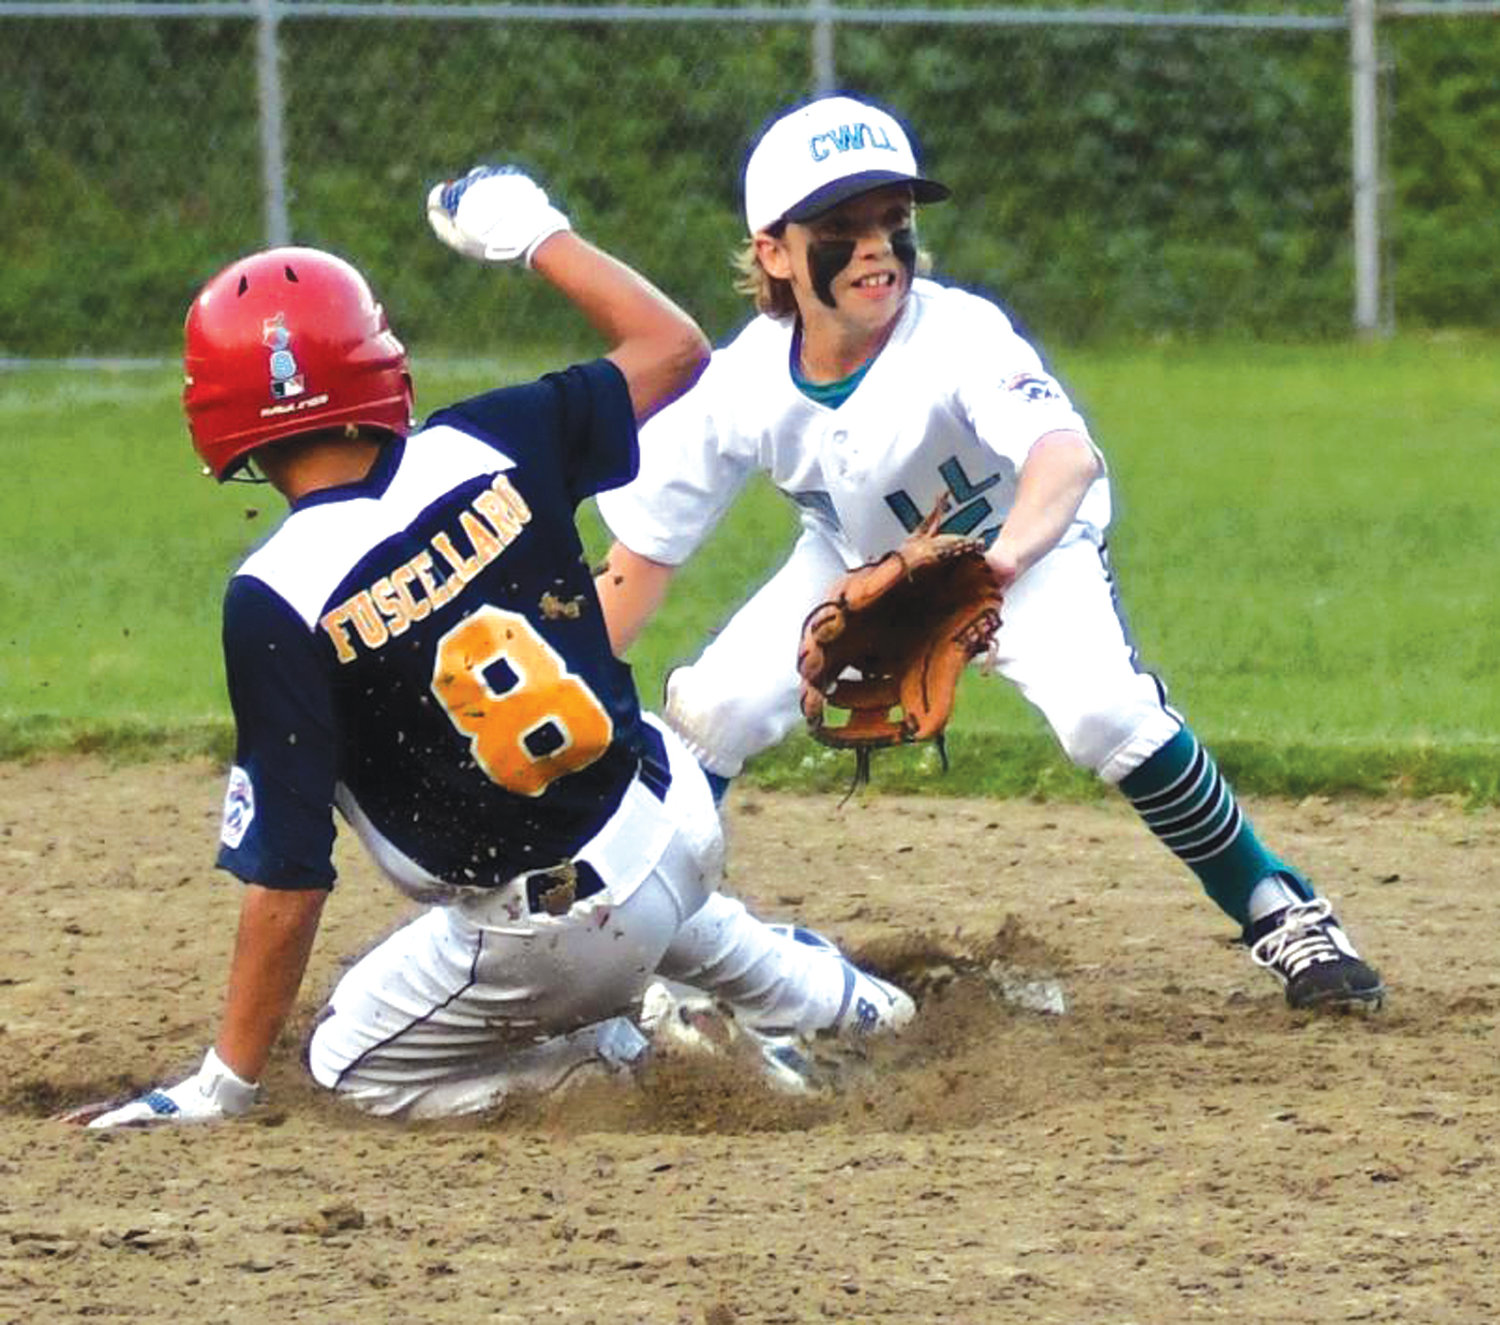 SLIDING IN: Cranston Western's Ethan Madden gets ready to apply the tag on a North Providence runner trying to steal second base.